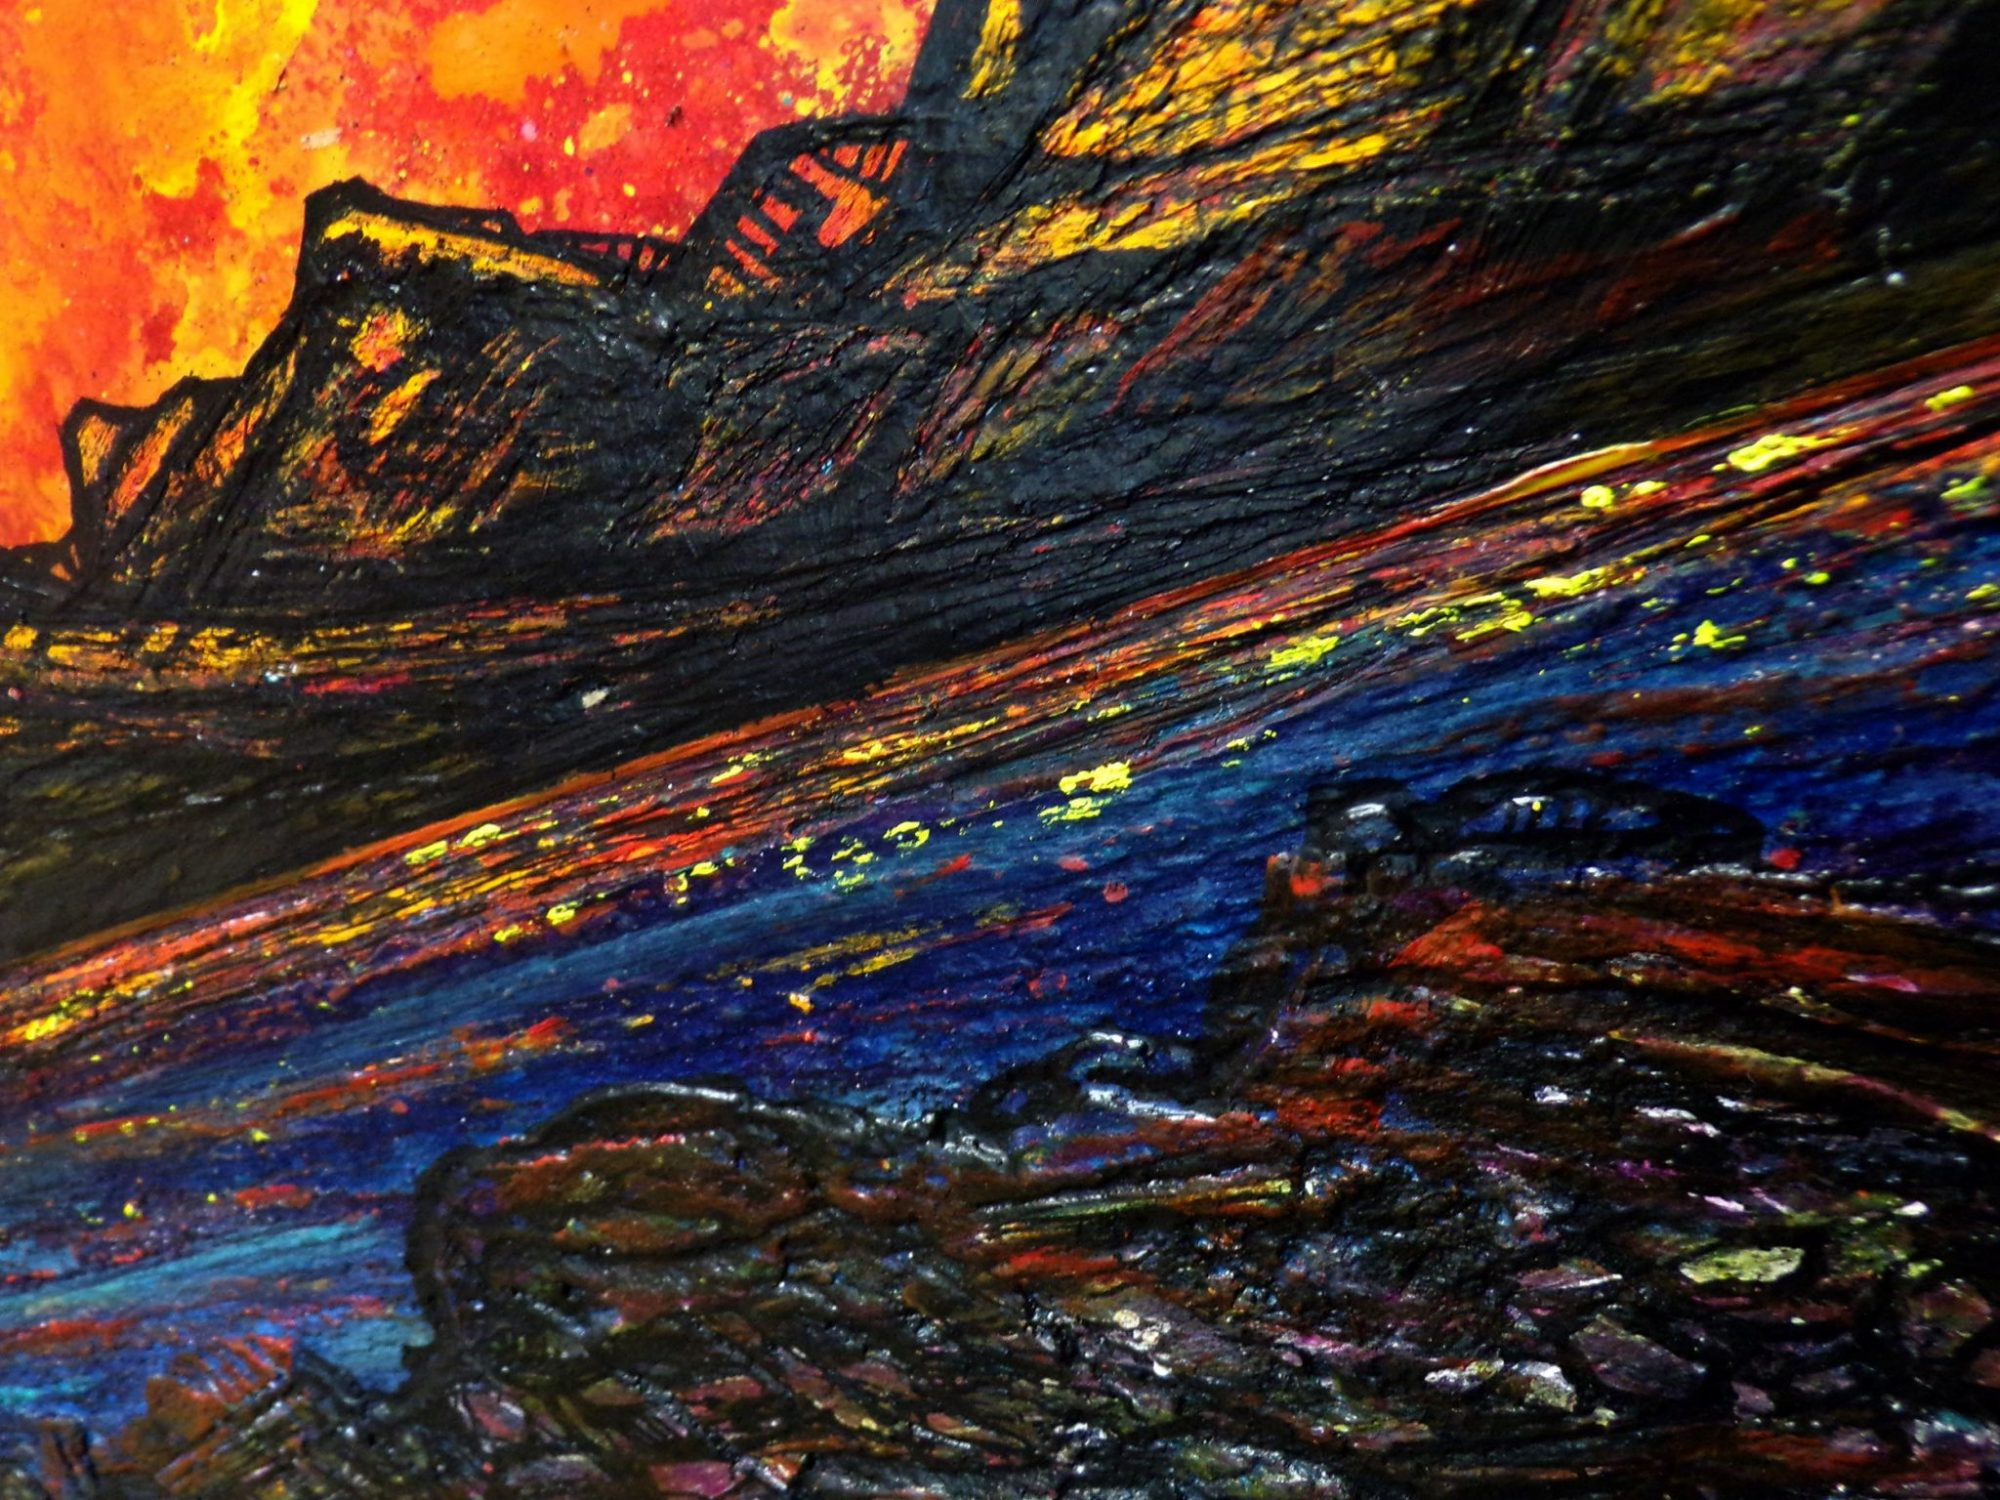 Canvas painting of Skye, Scotland. Detail image 2 showing the deep edge canvas